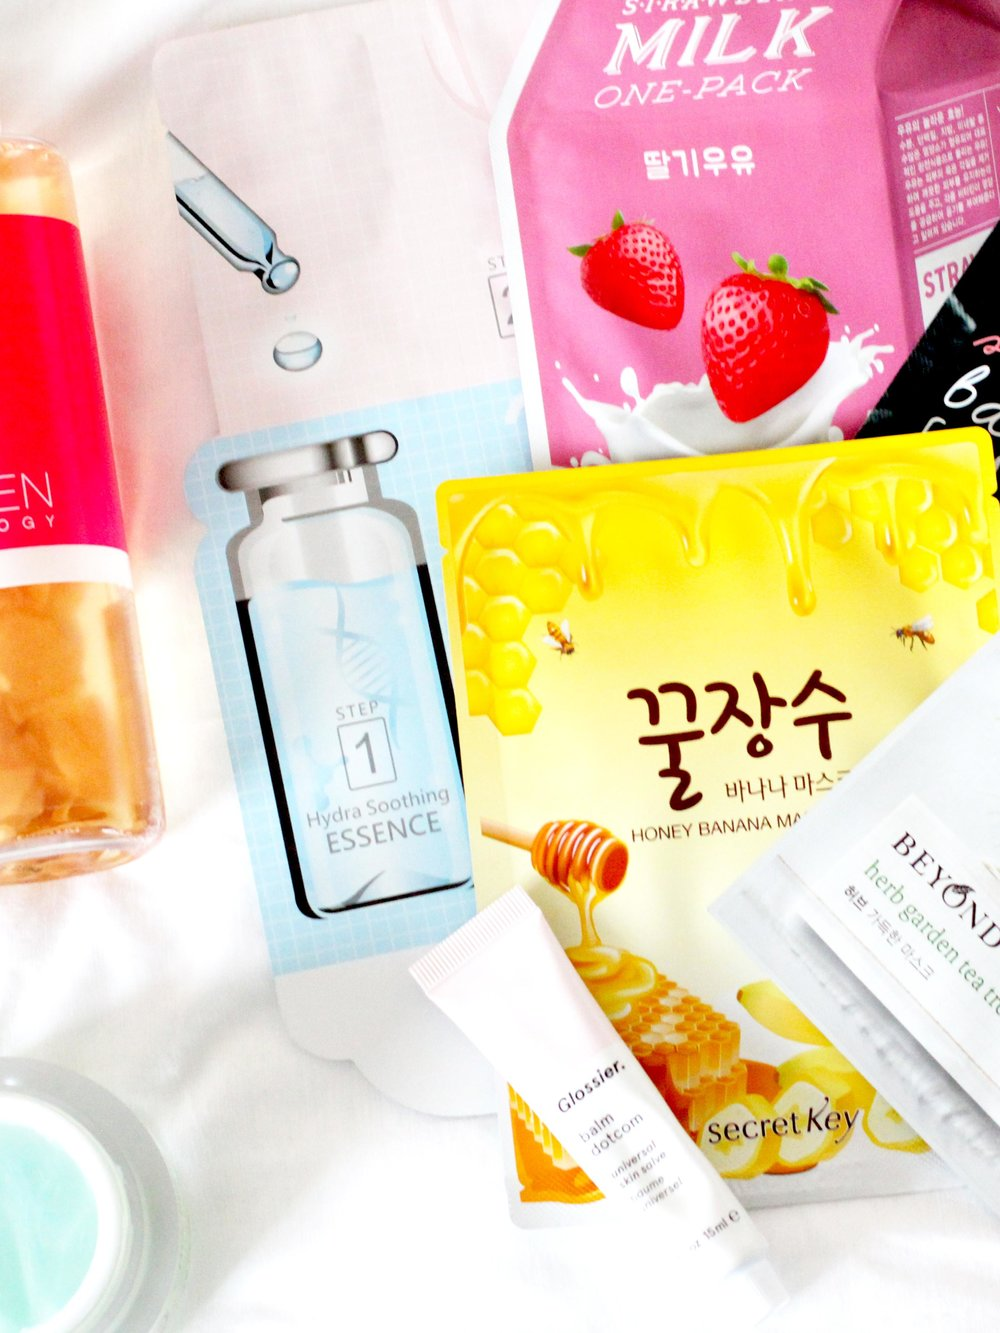 Top 6 Skincare Products Of 2016: From innovative formulation discoveries to what's hot in Korean beauty.